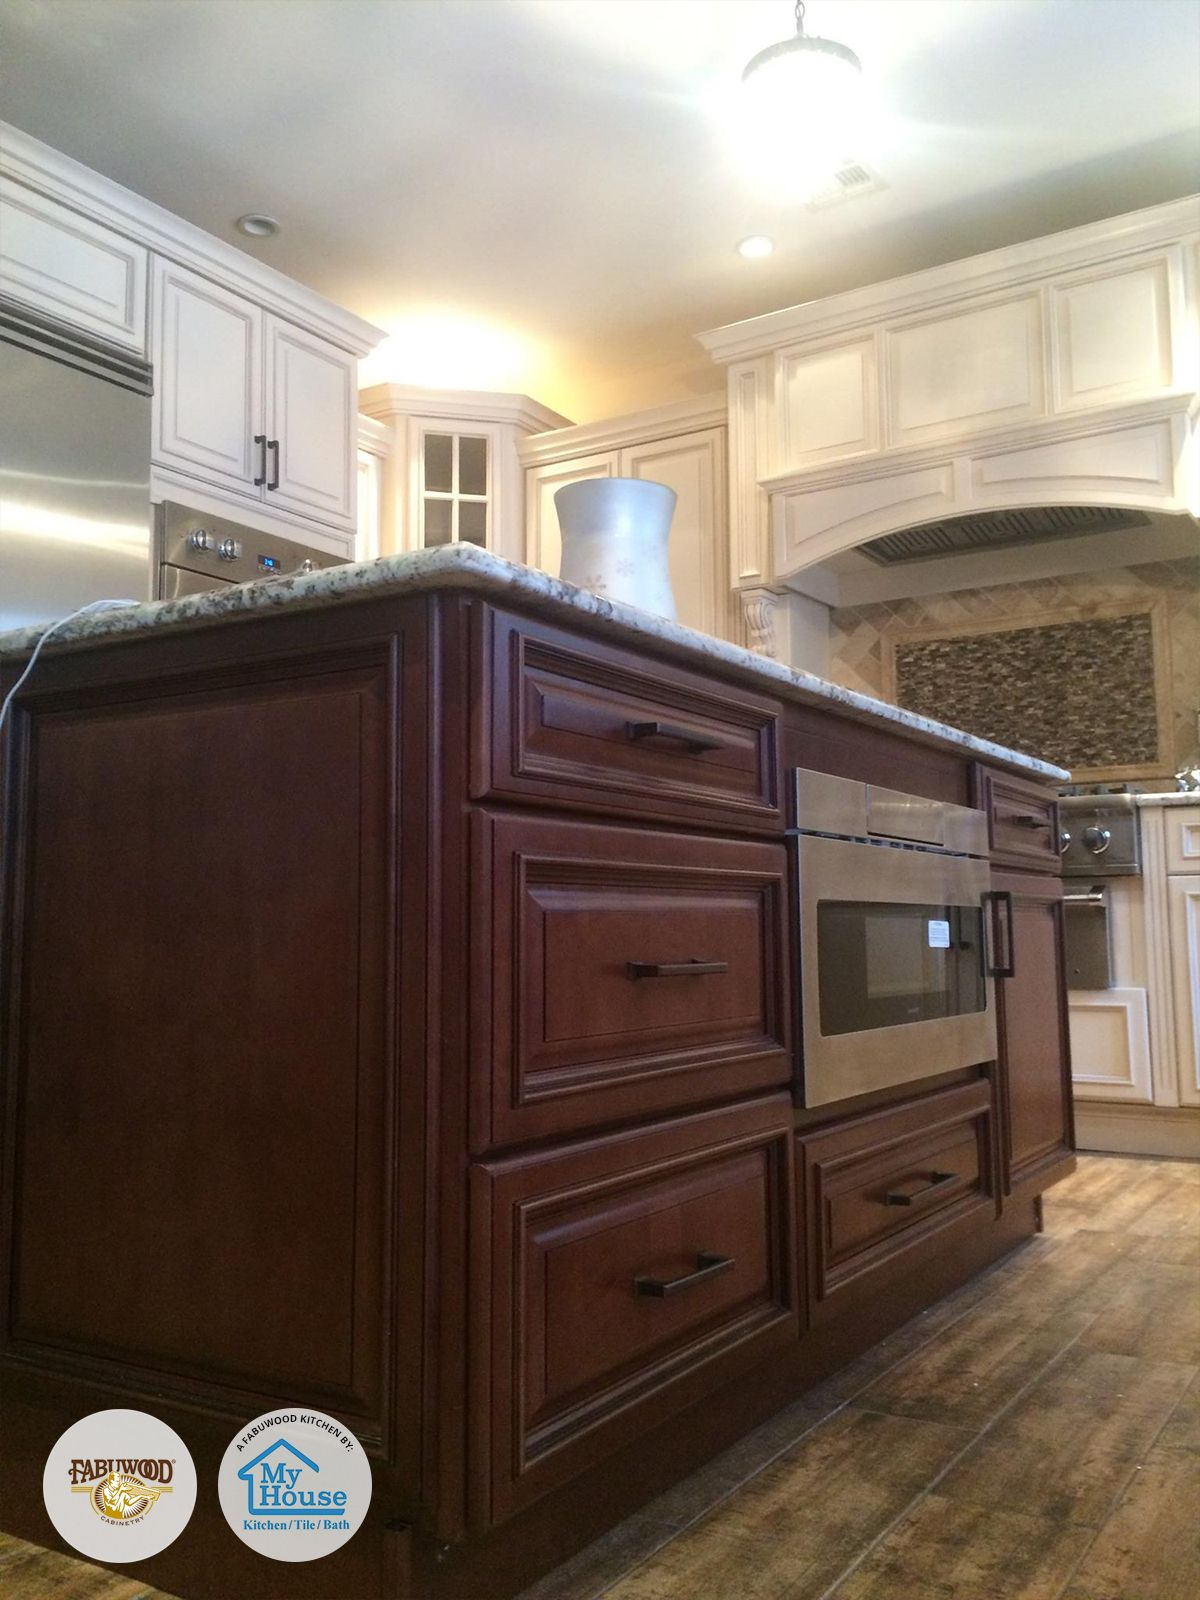 Our Wellington Cabinets In Cinnamon And Ivory Built By My House Kitchen Tile And Bath Located In Union Nj Is Both Ver Fabuwood Cabinets Kitchen Kitchen Design